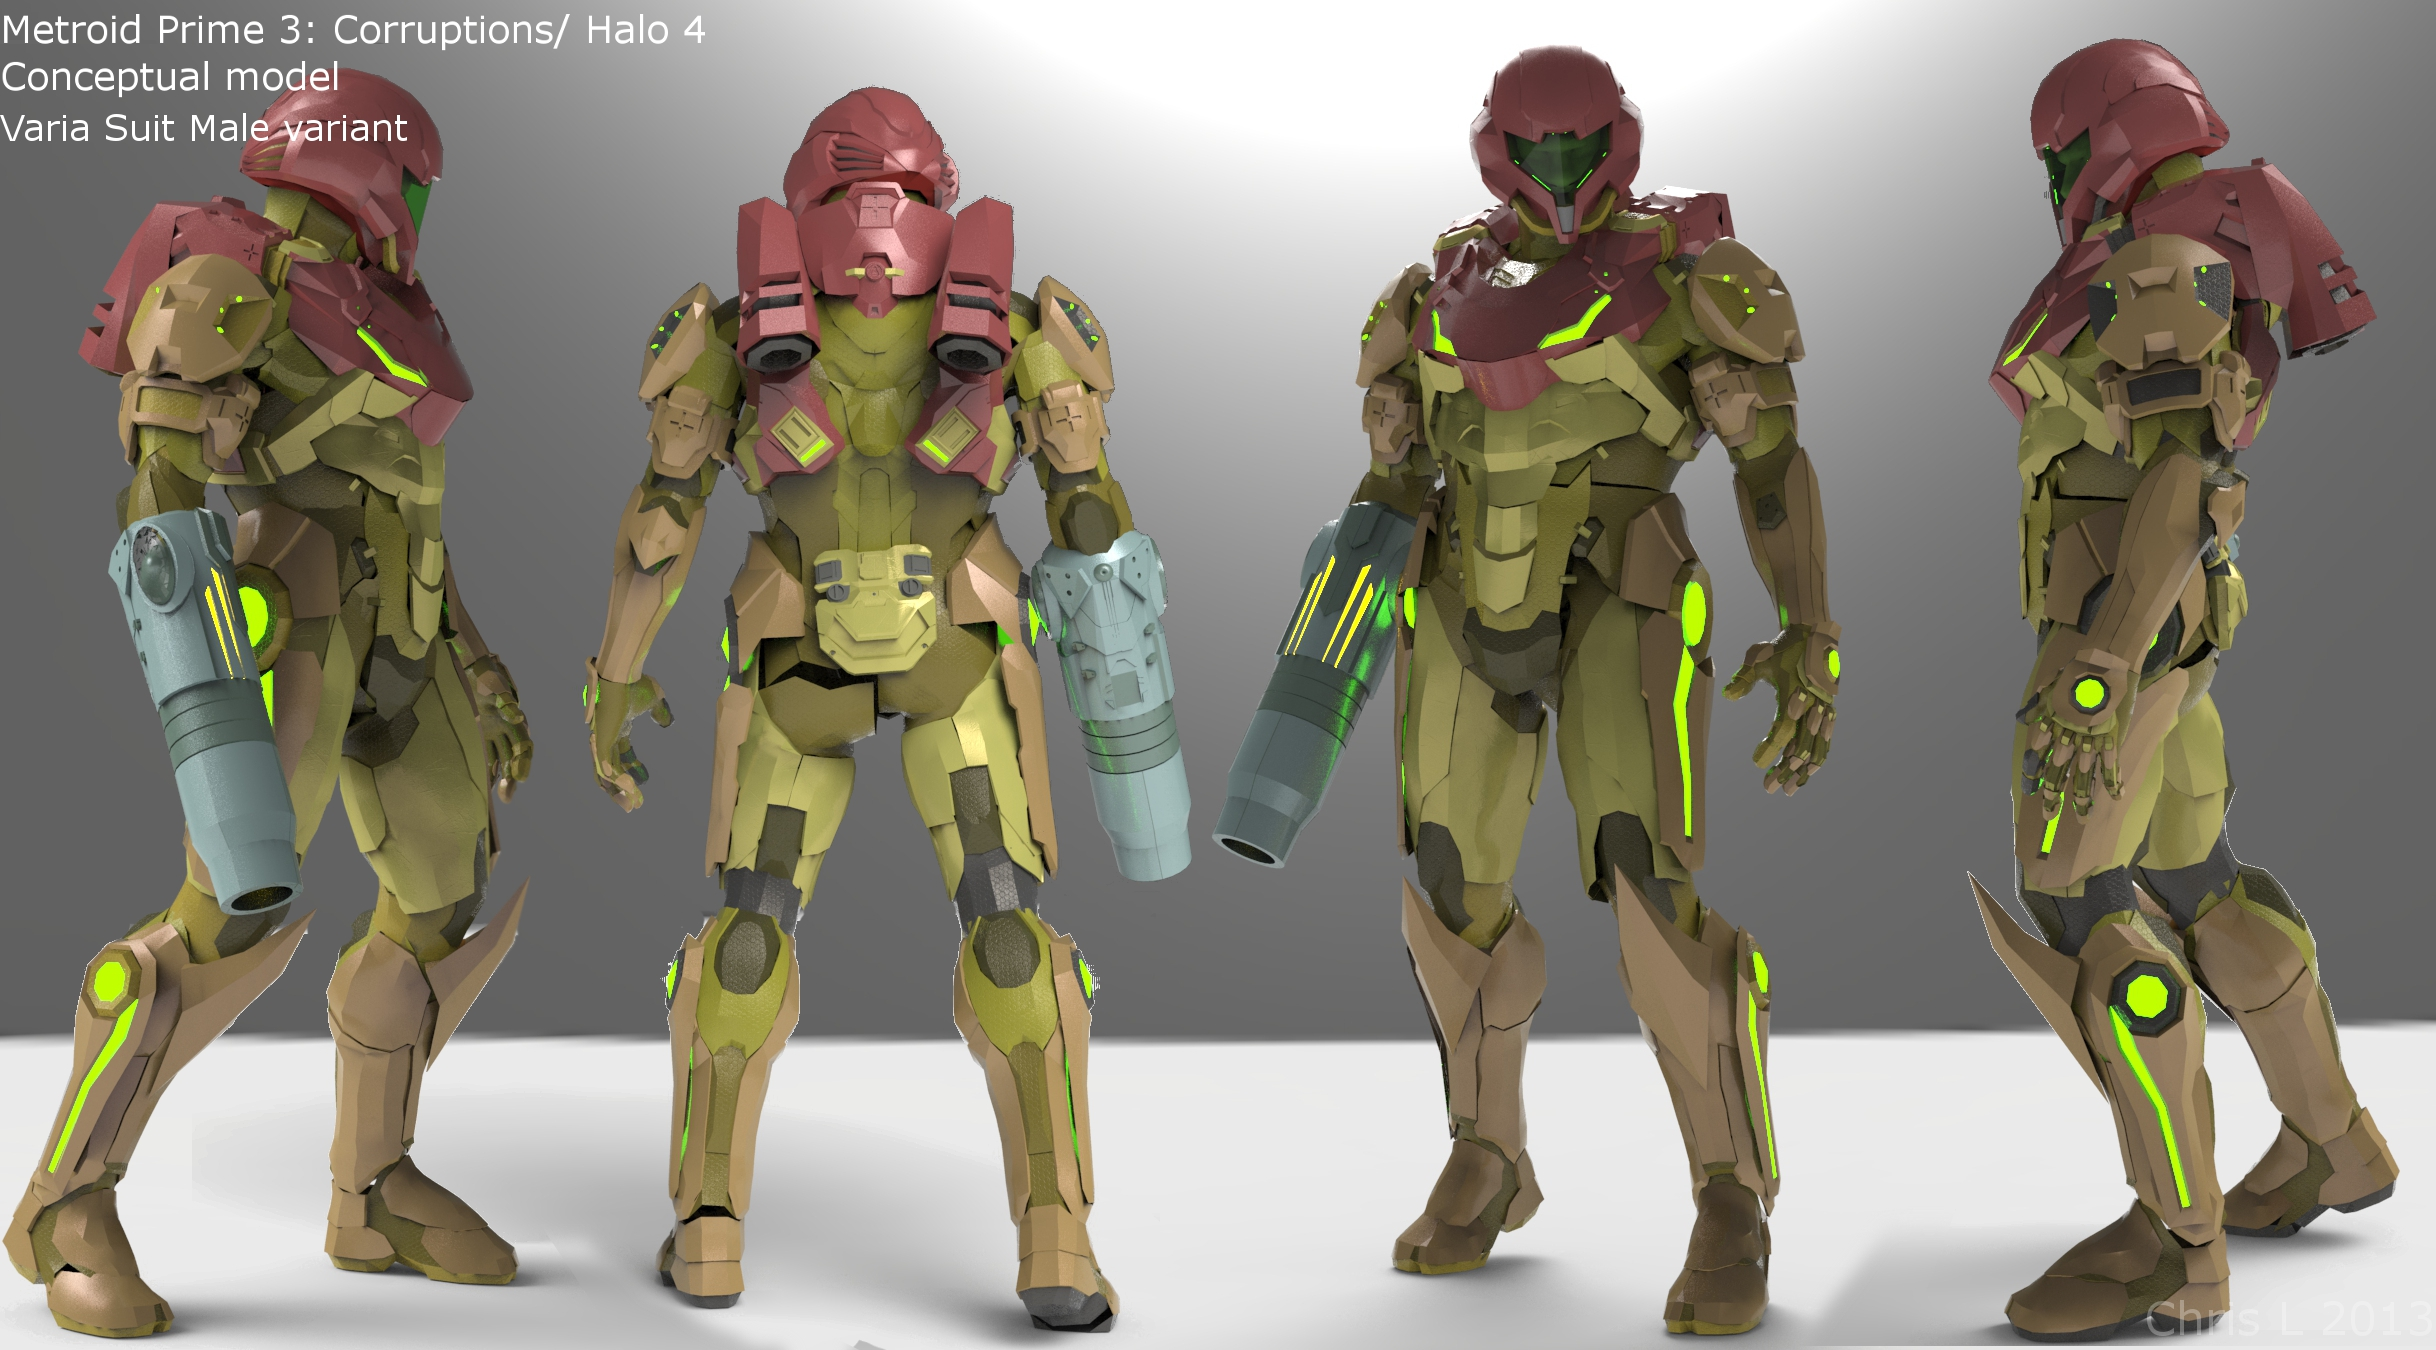 metroid prime 3 halo 4 male cross over suits